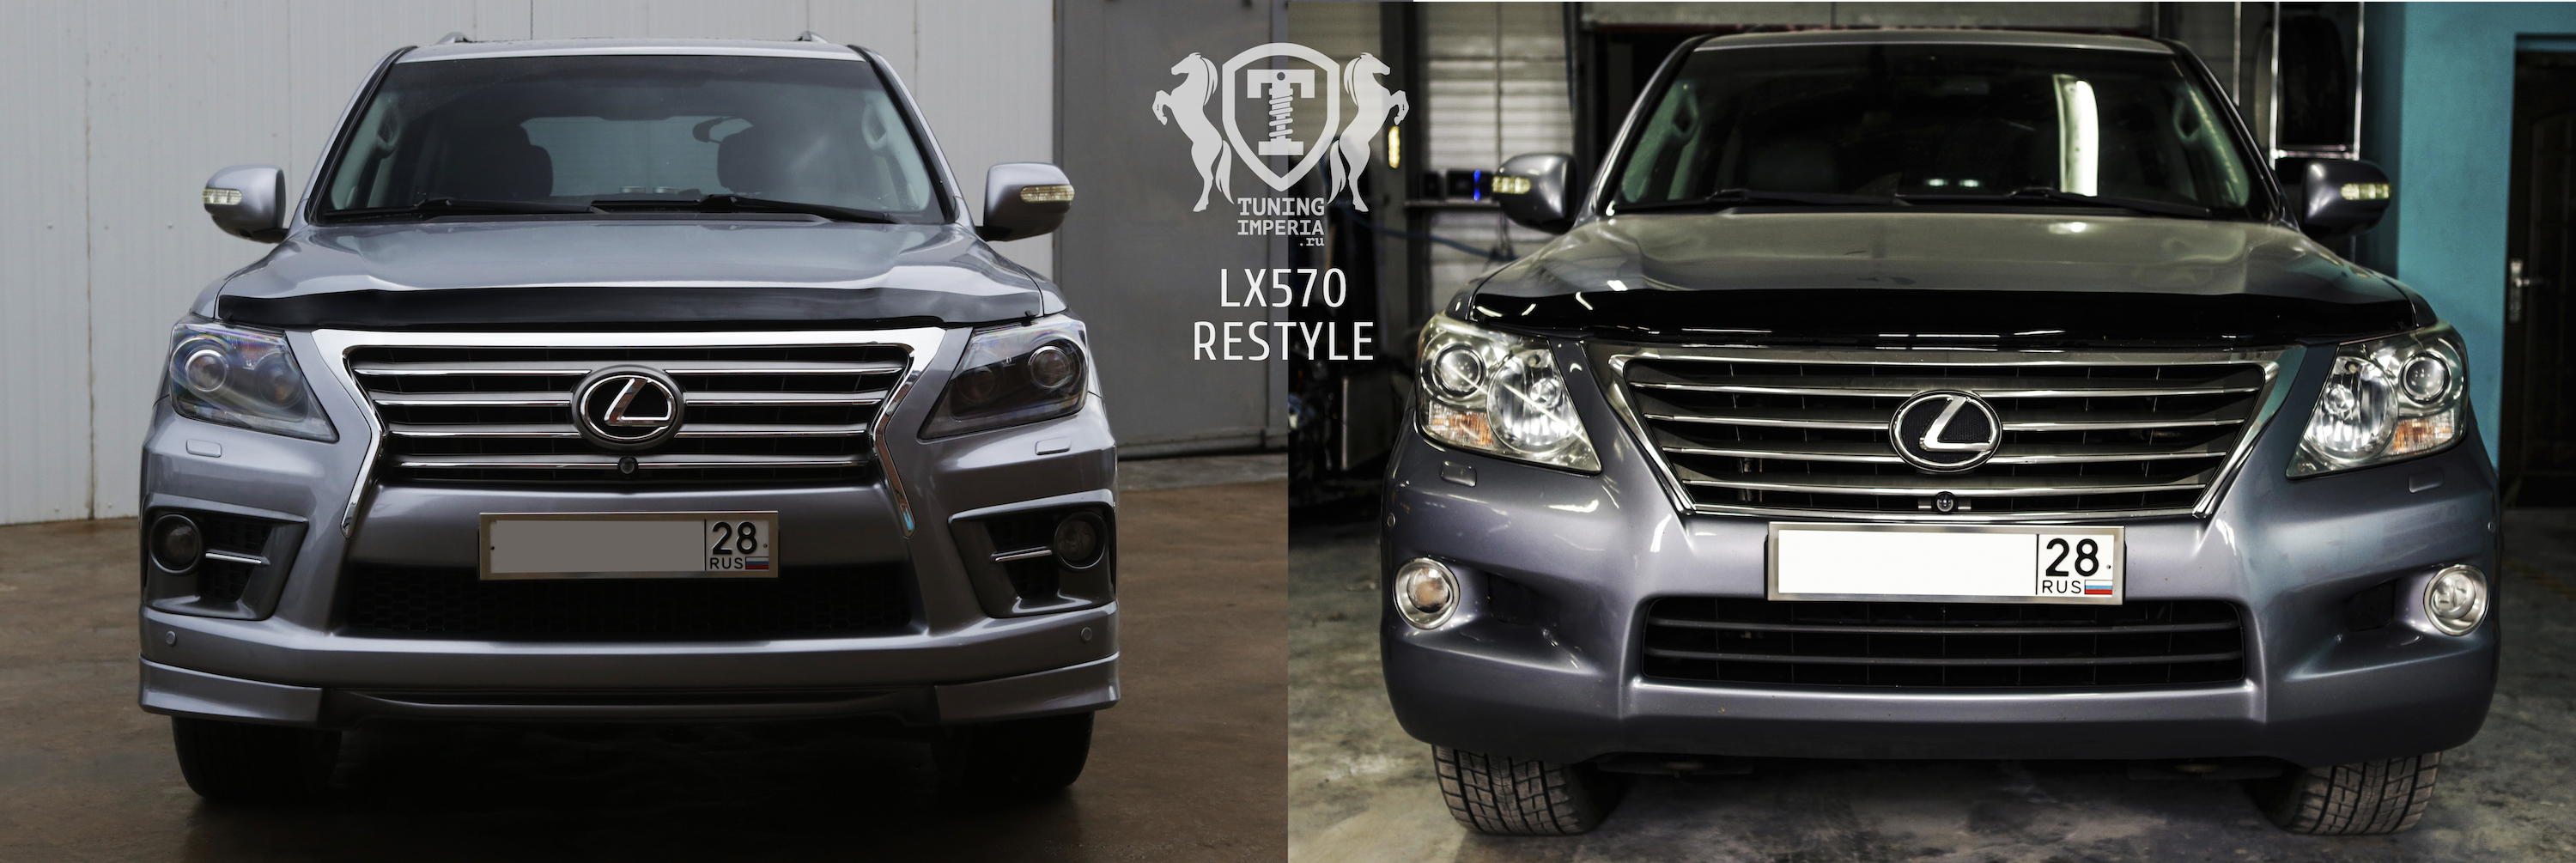 lx570_restyle